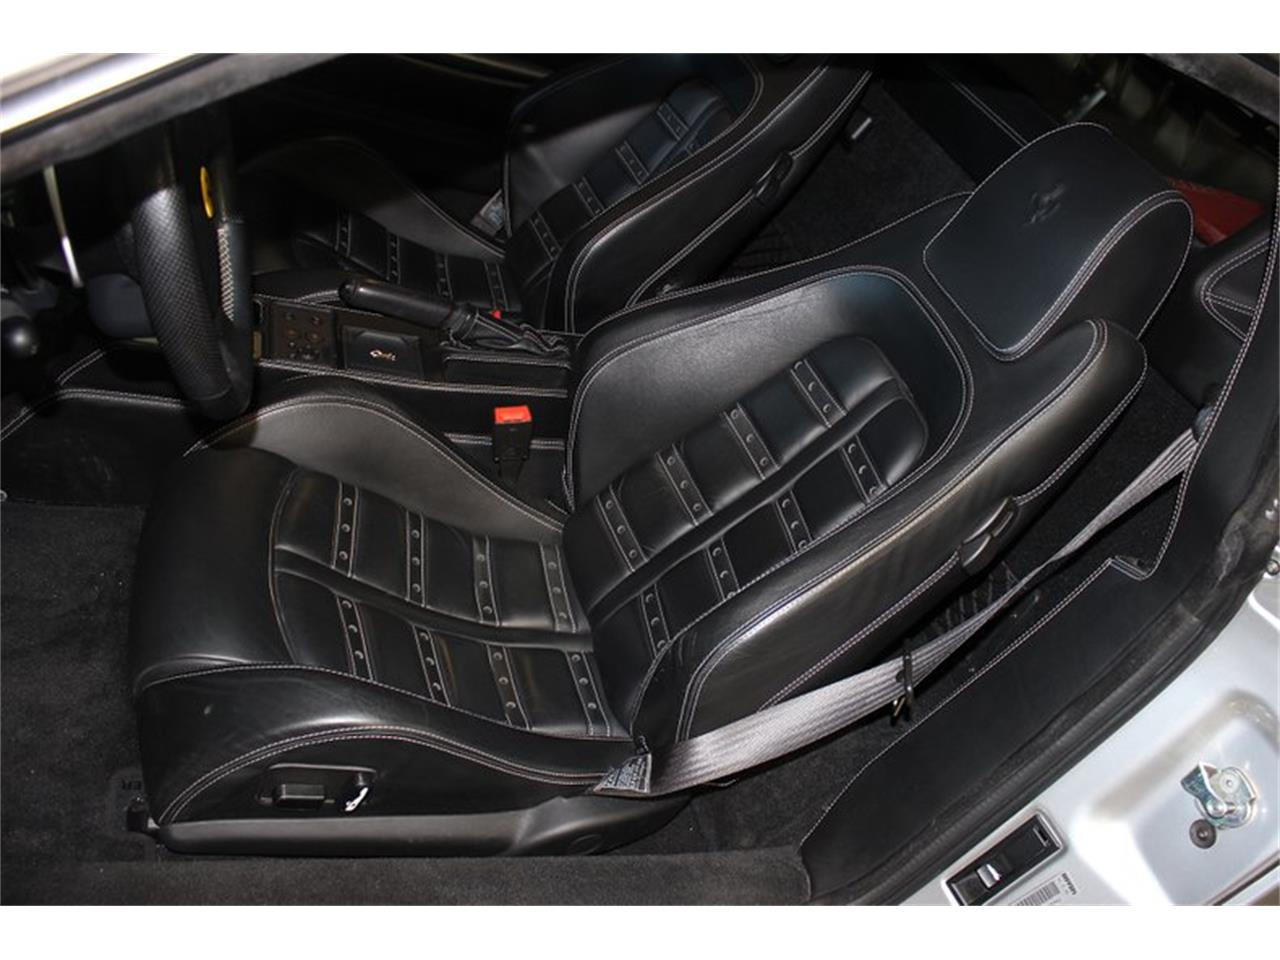 2005 Ferrari F430 for sale in San Carlos, CA – photo 29